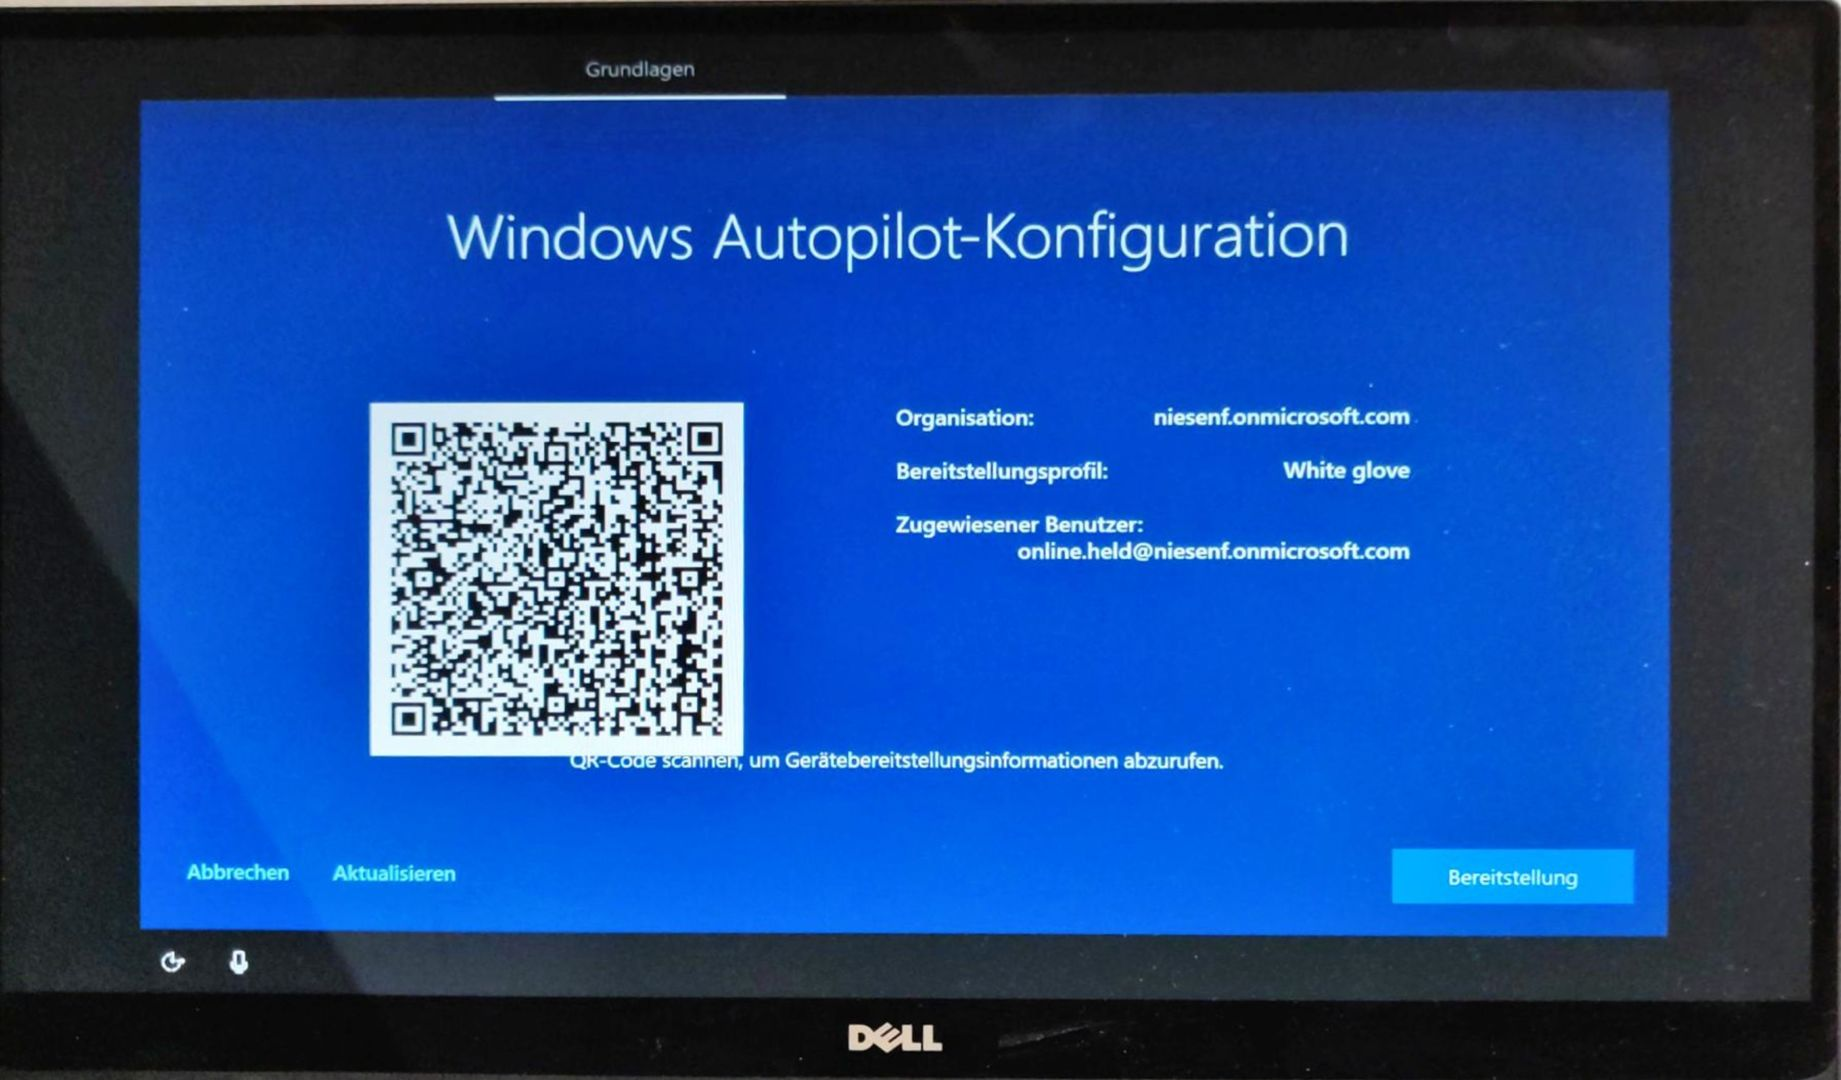 062519 0830 NeuesbeiAut7 New for Autopilot with Windows 10 1903 (Updated) 13